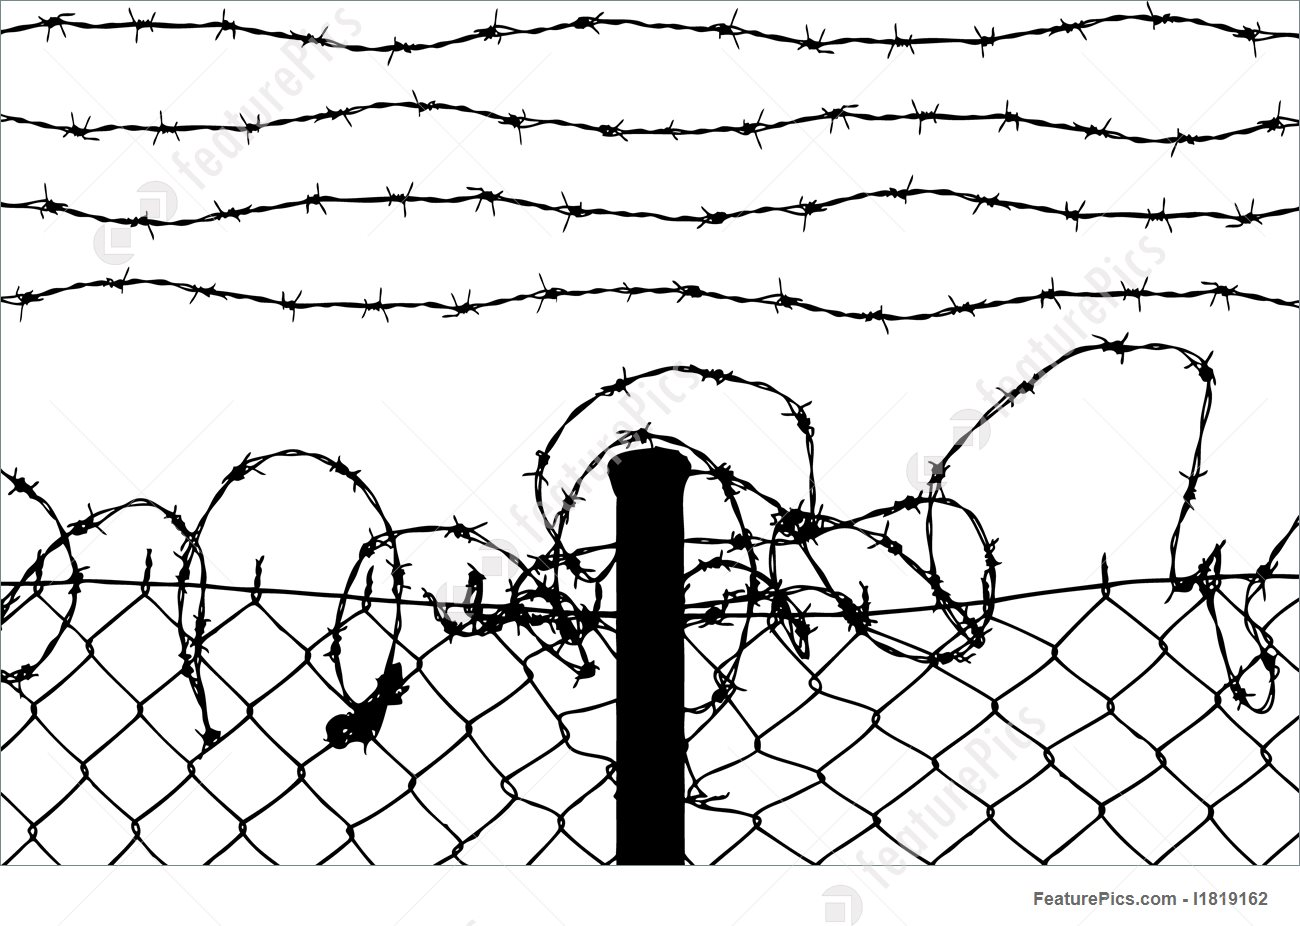 Barb wire drawing at getdrawings free for personal